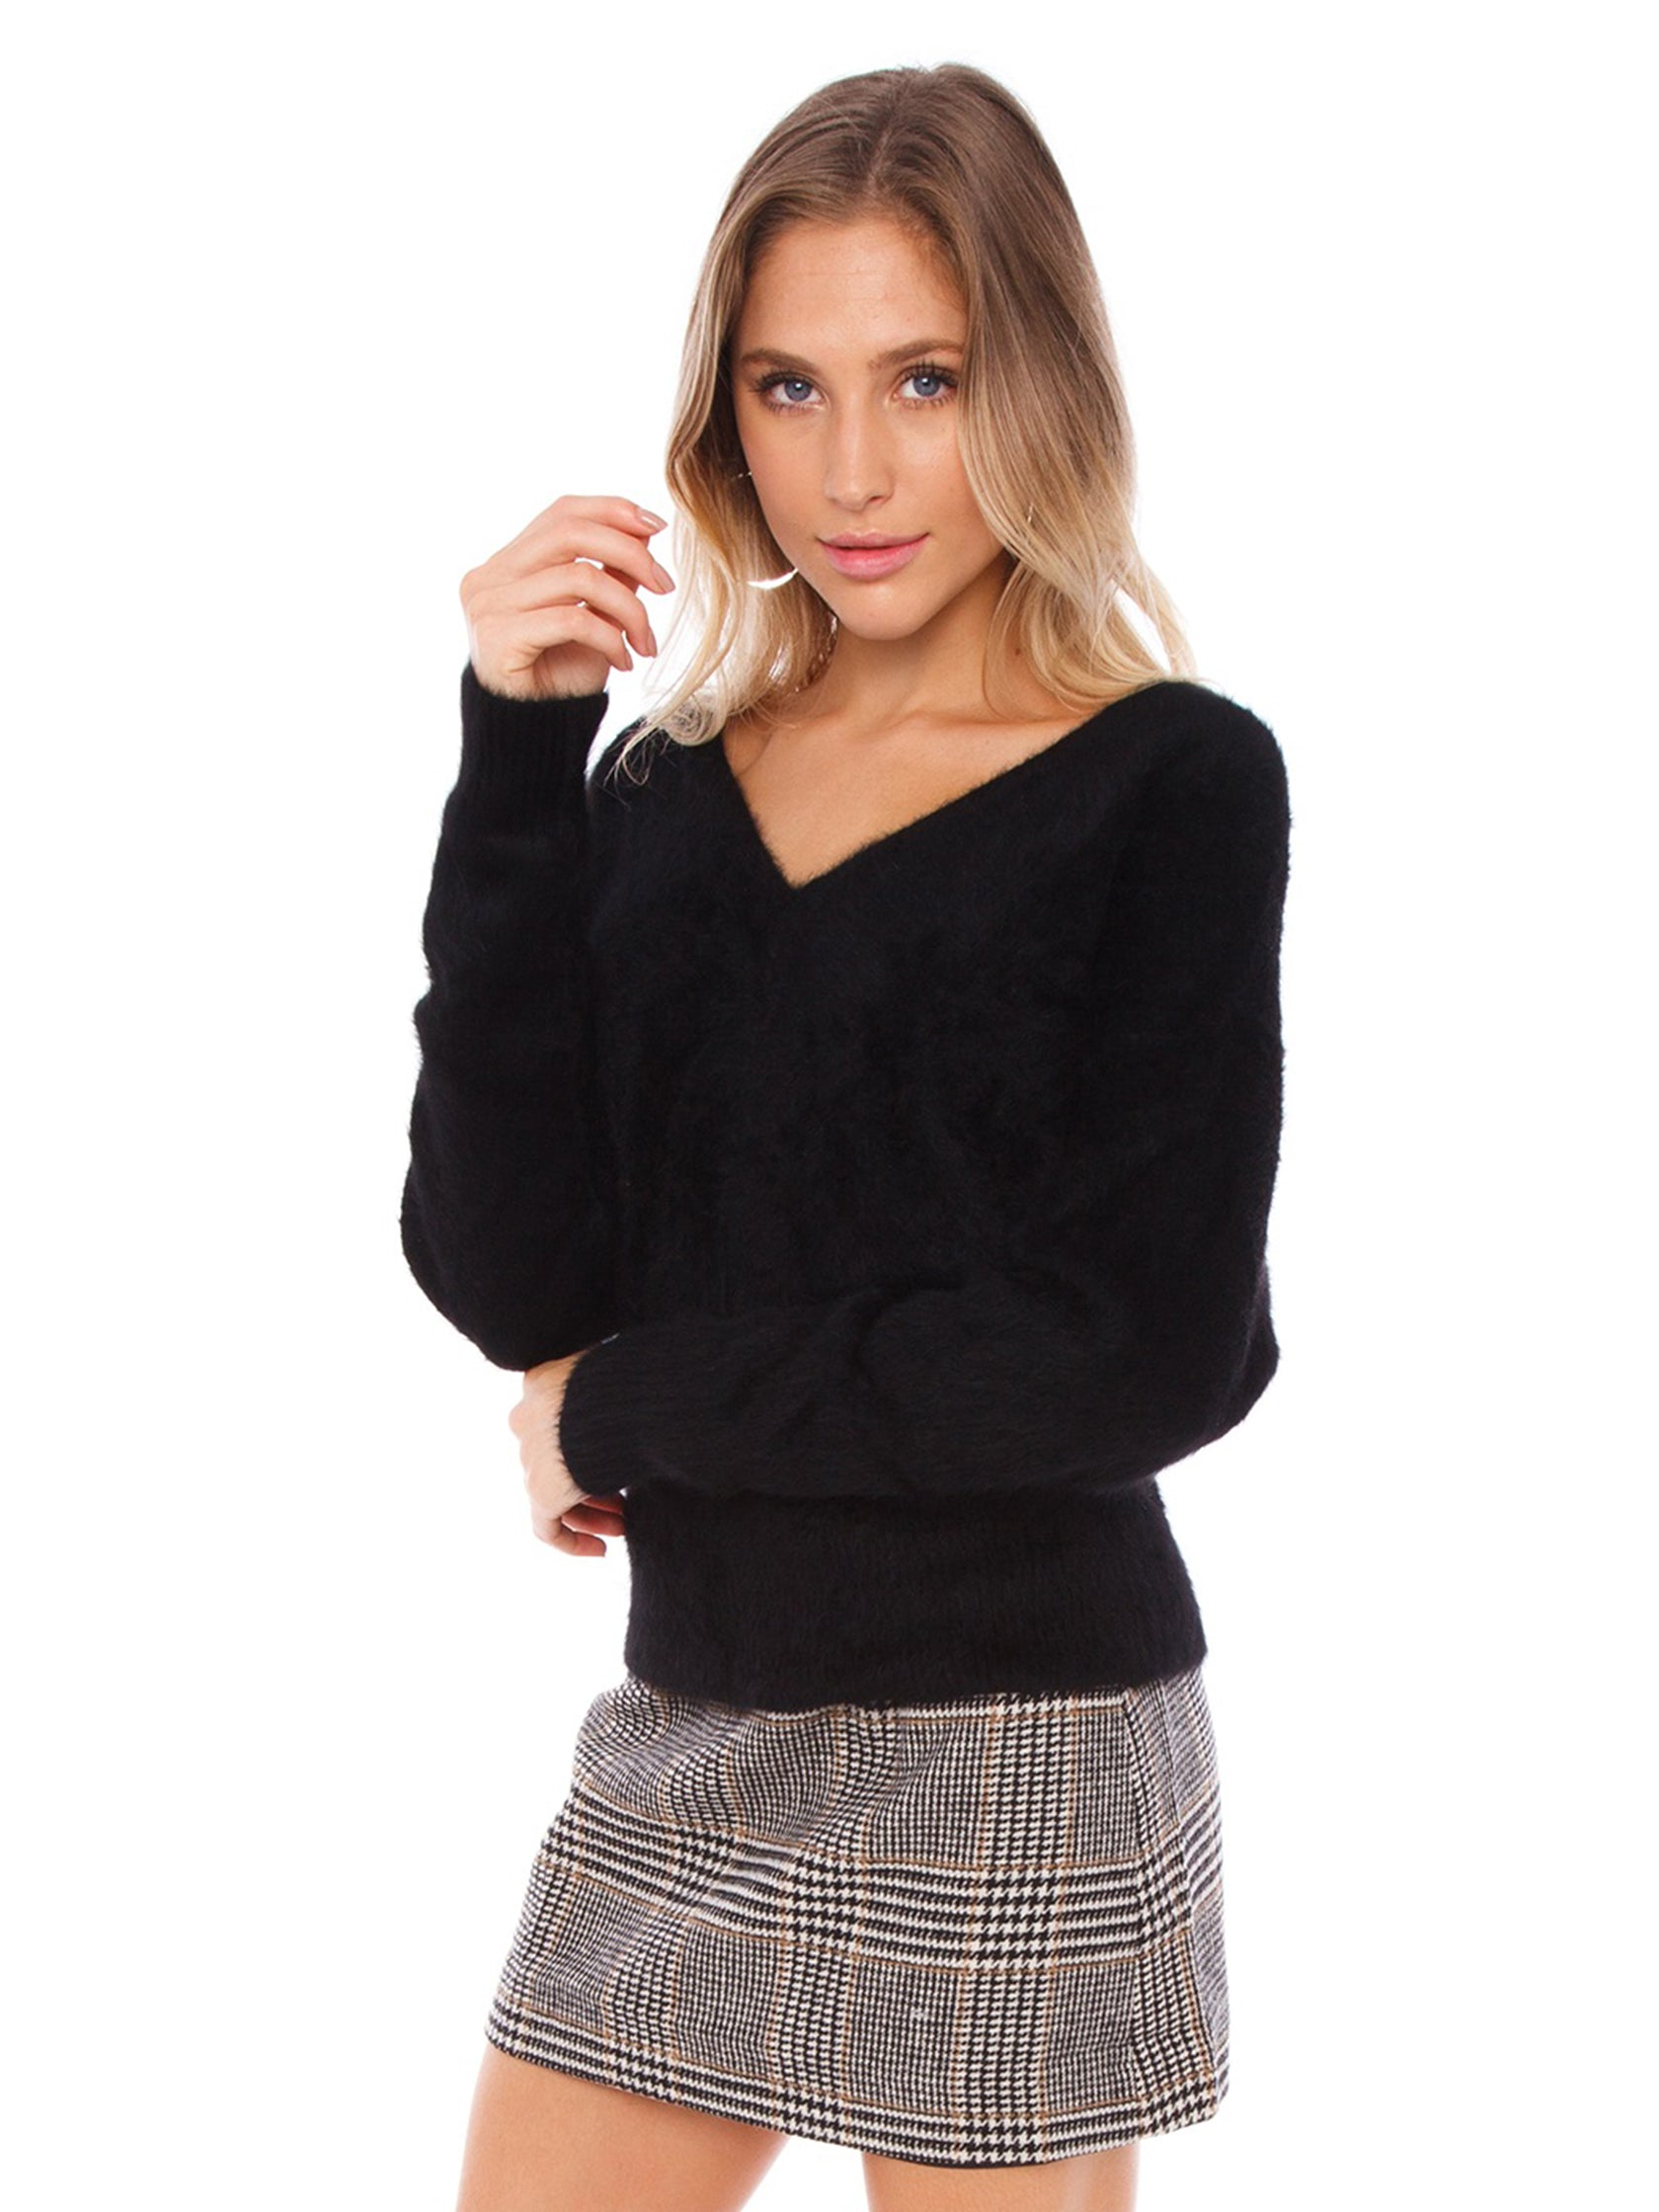 Women wearing a sweater rental from SAGE THE LABEL called Lover Lay Down Sweater